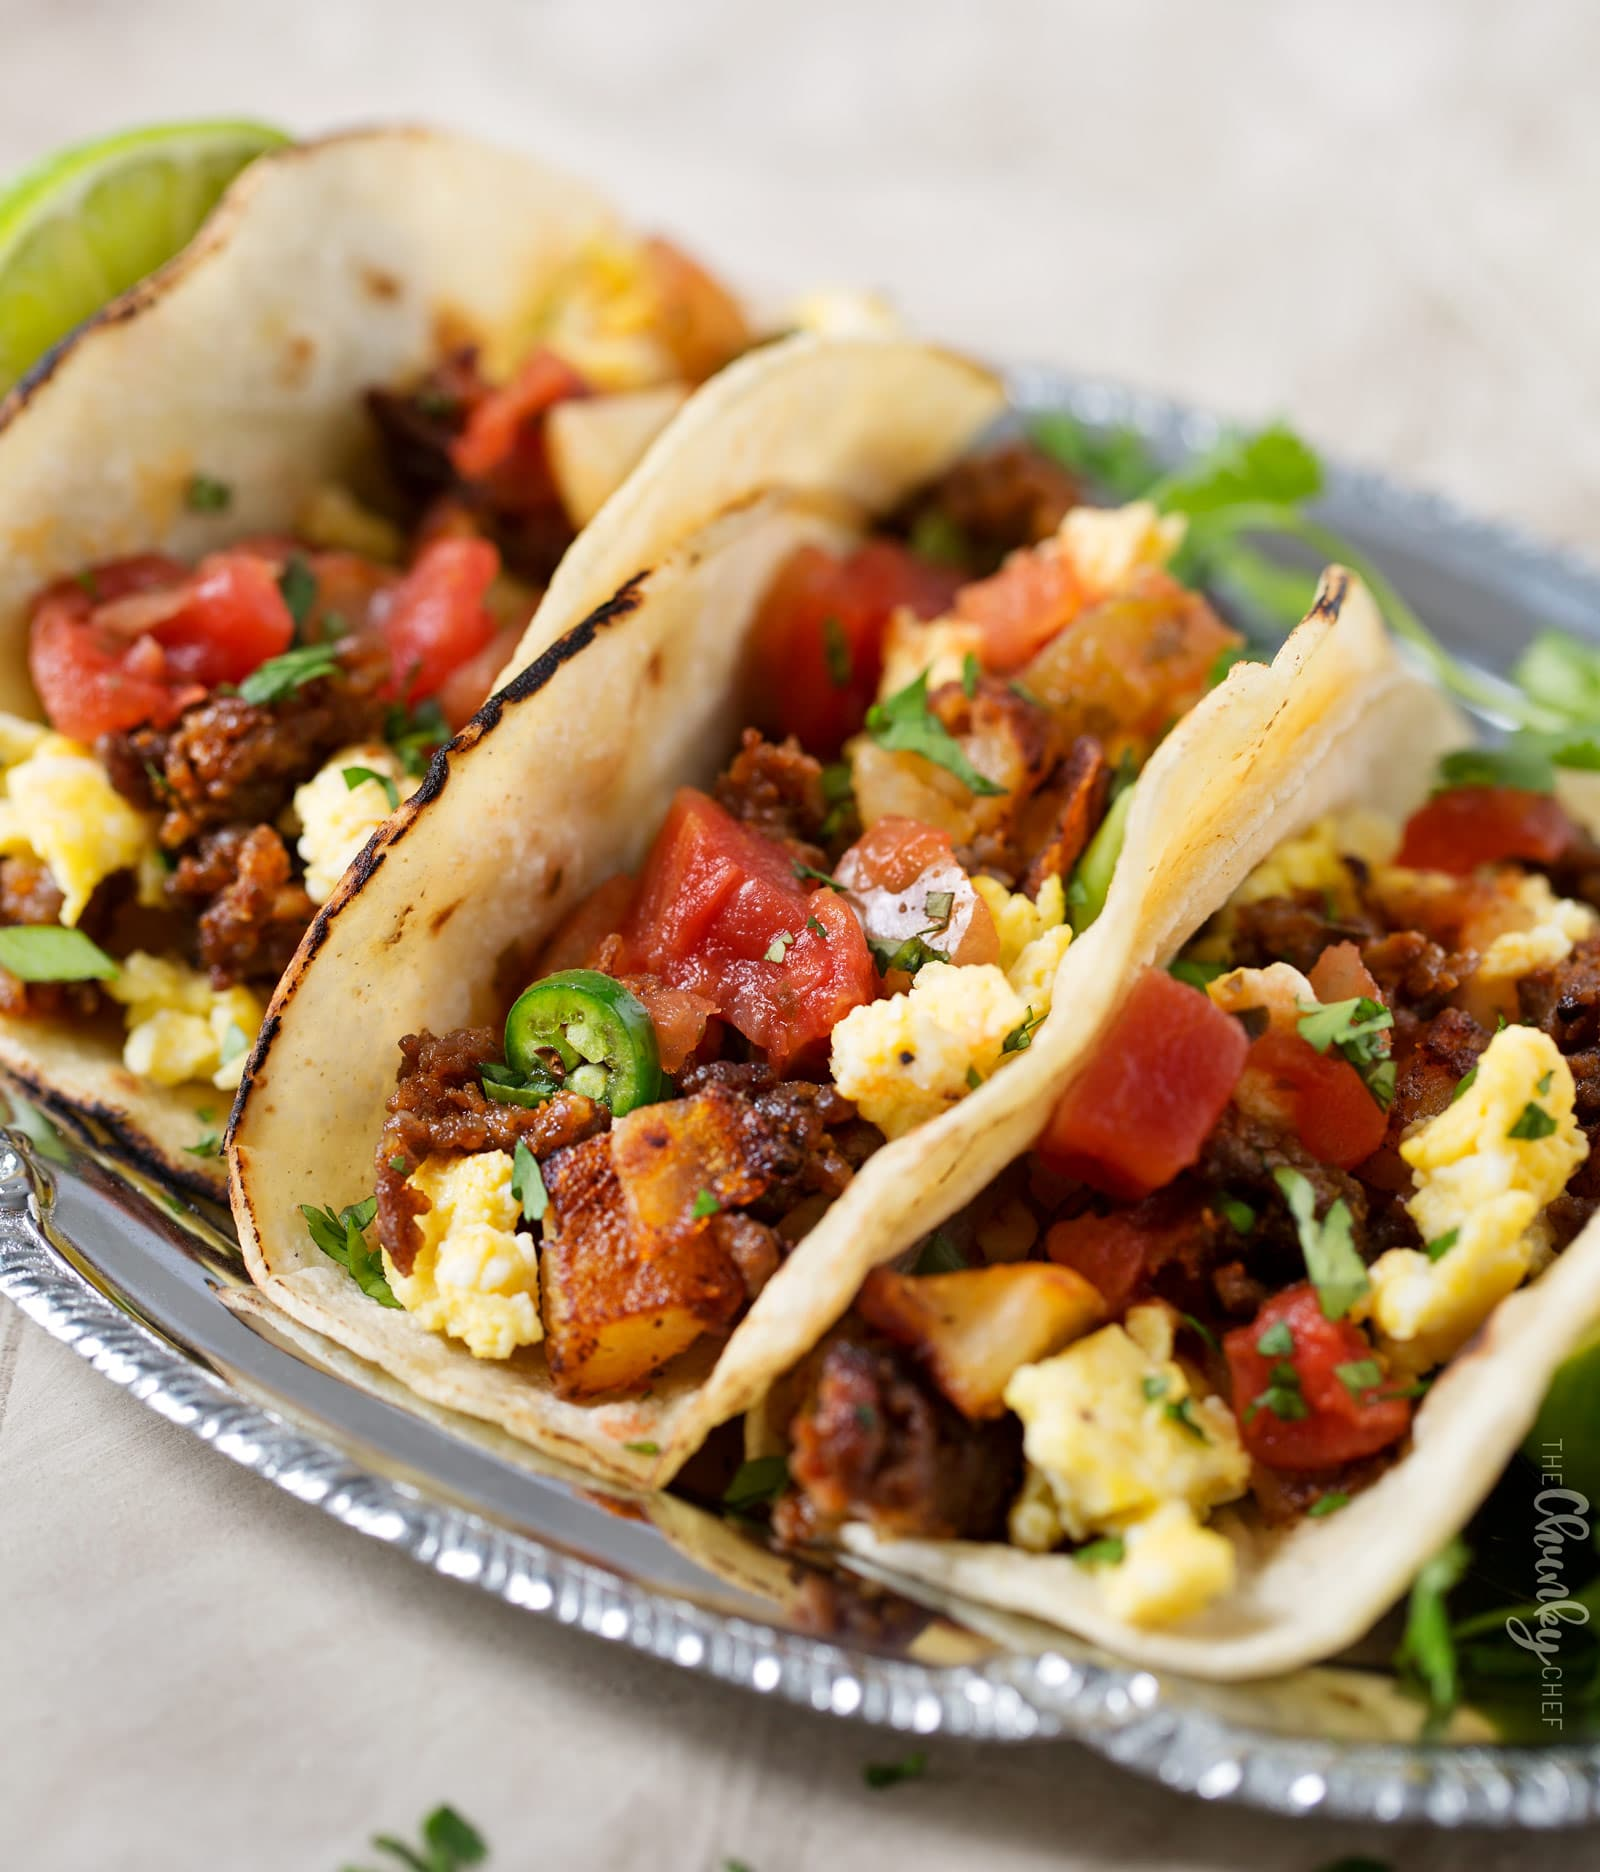 Plate of breakfast tacos